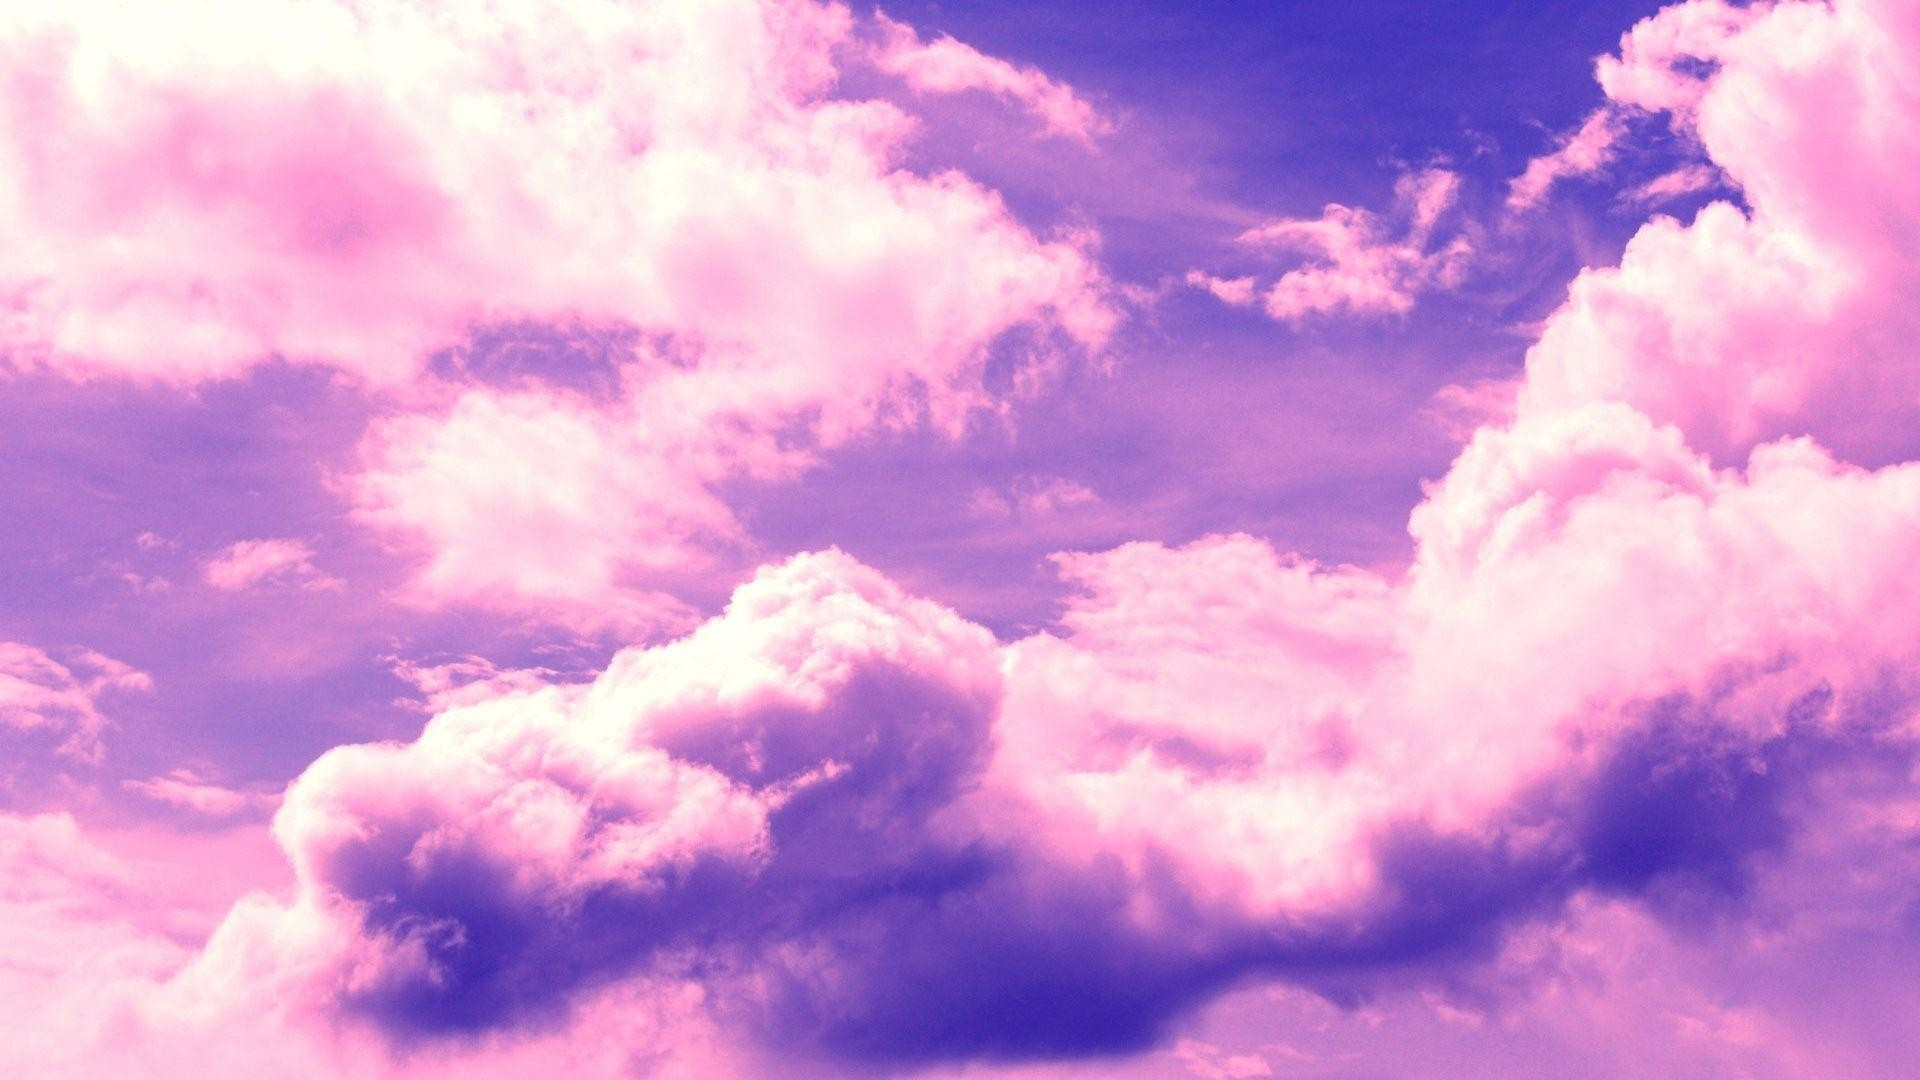 Pink Cloud Free Wallpaper and Background